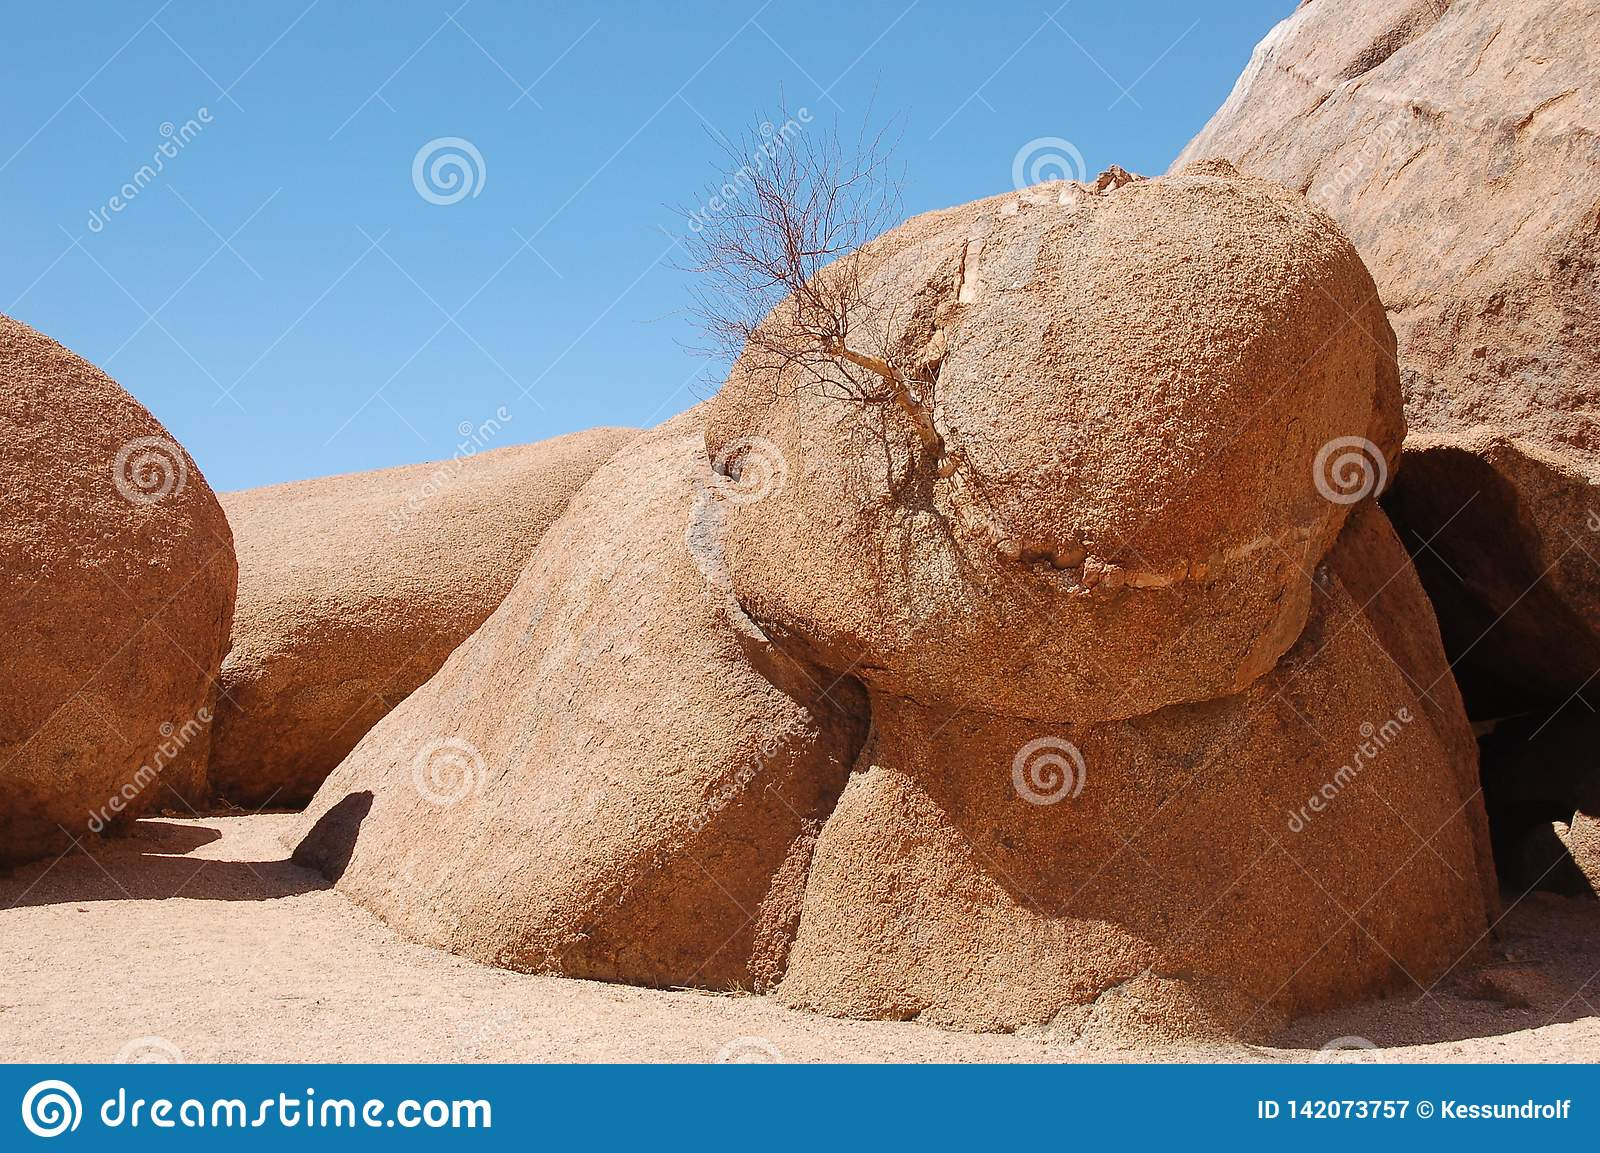 Tree growing on stone in arid climate, blue sky